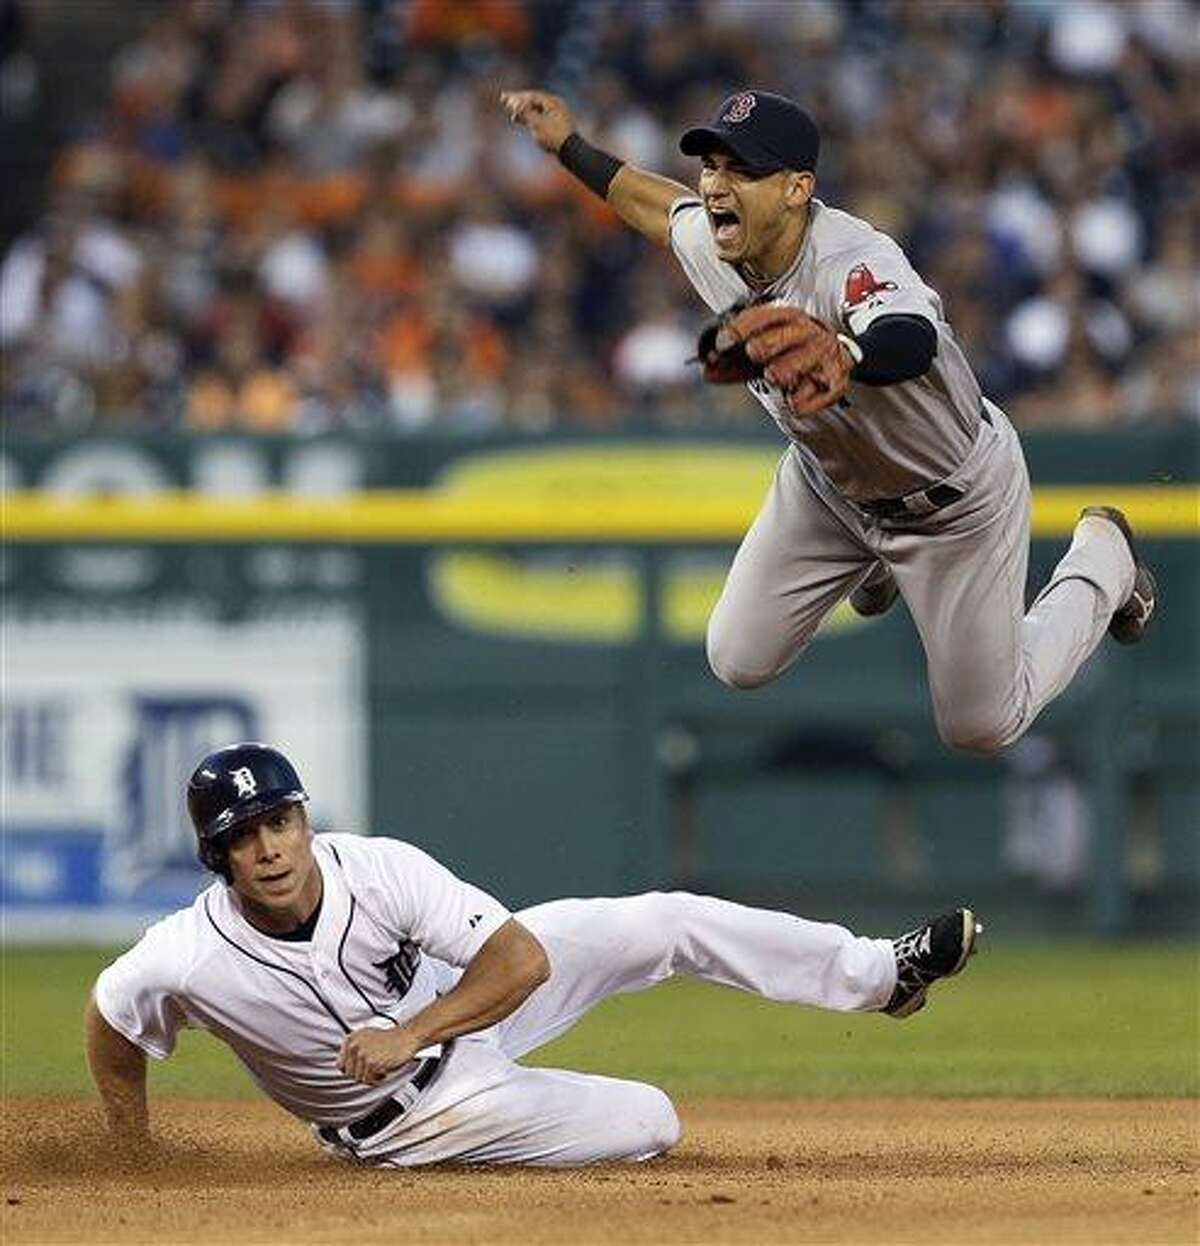 Boston Red Sox's Jose Iglesias jumps after Detroit Tigers' Andy Dirks, bottom, slides to break up the throw to first base on a Brayan Pena fielders choice in the seventh inning of a baseball game in Detroit, Thursday, June 20, 2013. Pena was safe at first base. (AP Photo/Paul Sancya)